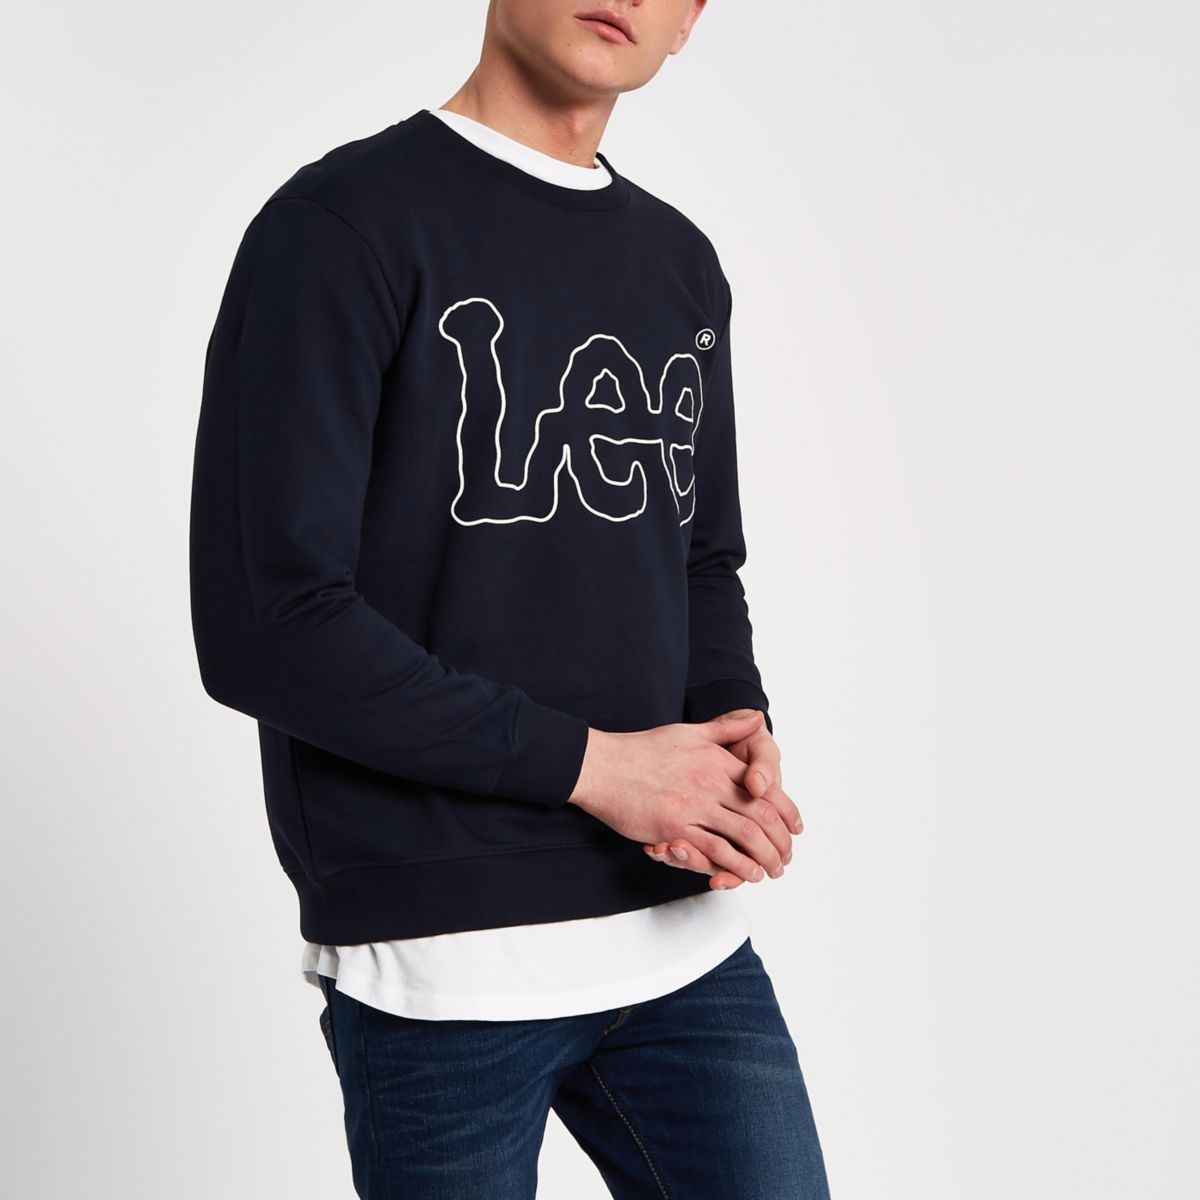 Navy Lee logo print crew neck sweatshirt